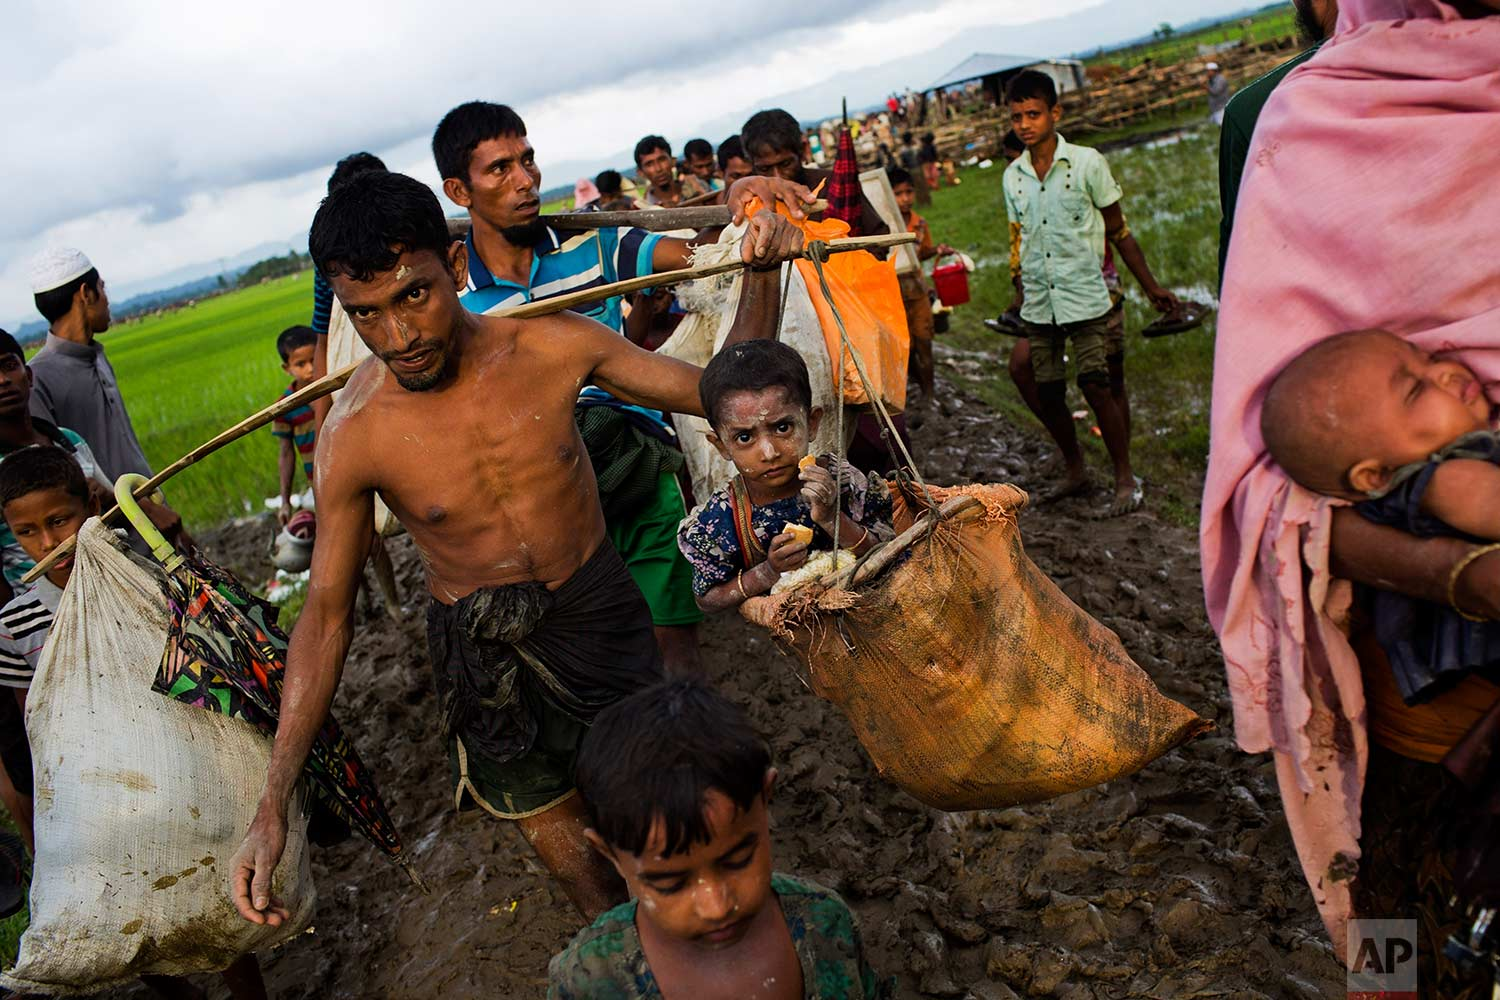 A Rohingya ethnic minority refugee from Myanmar carries a child in a sack and walks through rice fields after crossing over to the Bangladesh side of the border near Cox's Bazar's Teknaf area, Friday, Sept. 1, 2017. Myanmar's military says almost 400 people have died in recent violence in the western state of Rakhine triggered by attacks on security forces by insurgents from the Rohingya. (AP Photo/Bernat Armangue)